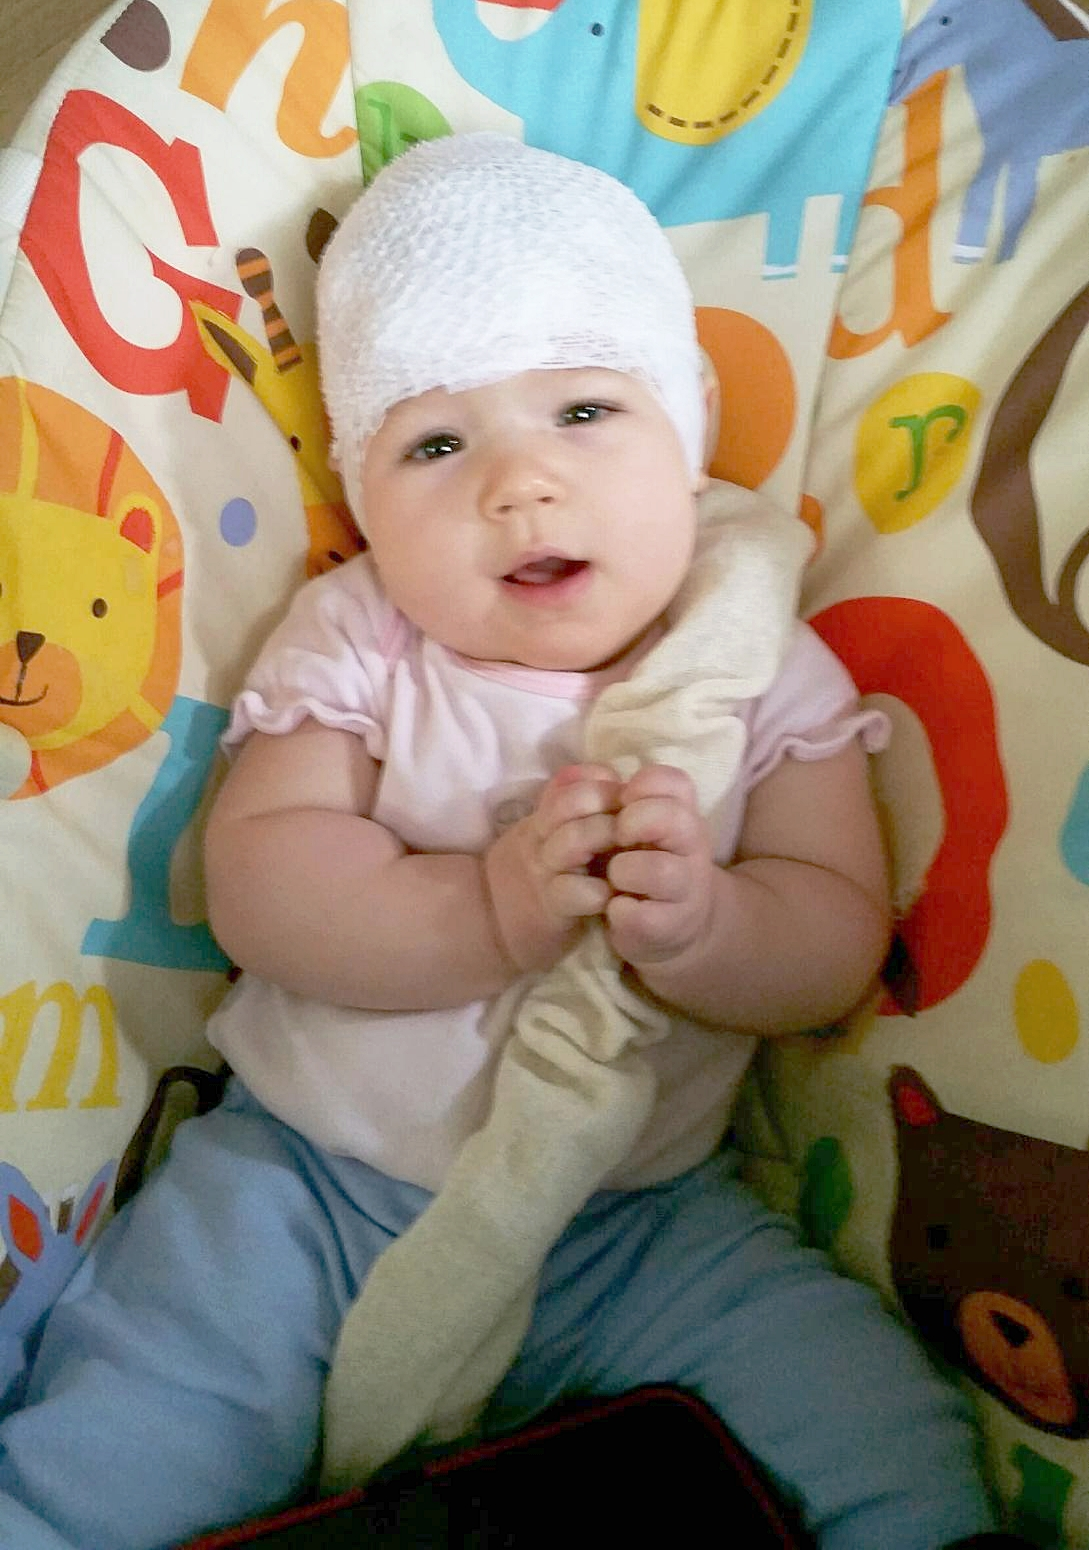 Adelaide's first EEG 5/16/16